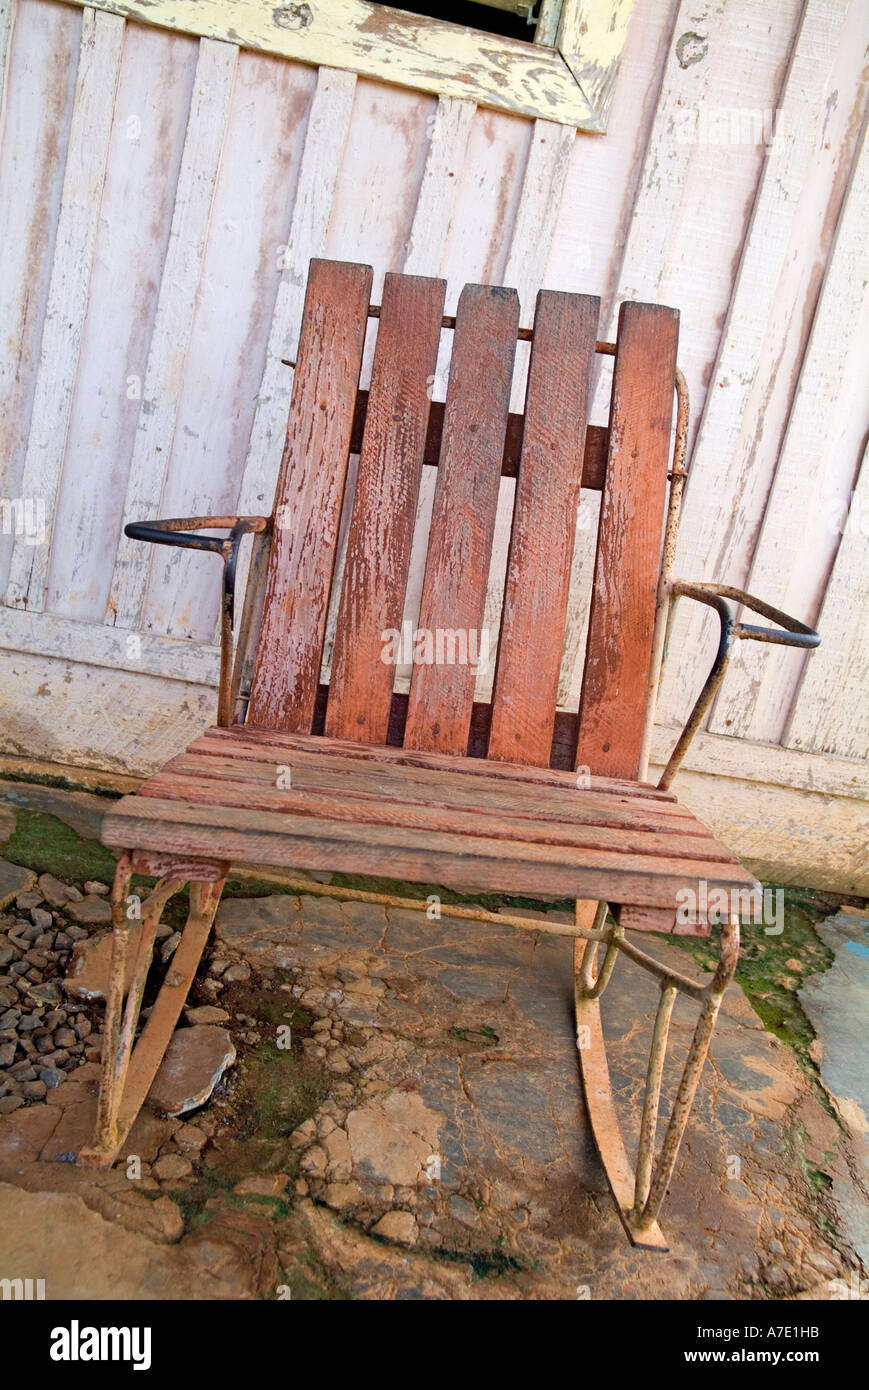 Old Wooden Rocking Chair In Run Down Condition Vinales Cuba